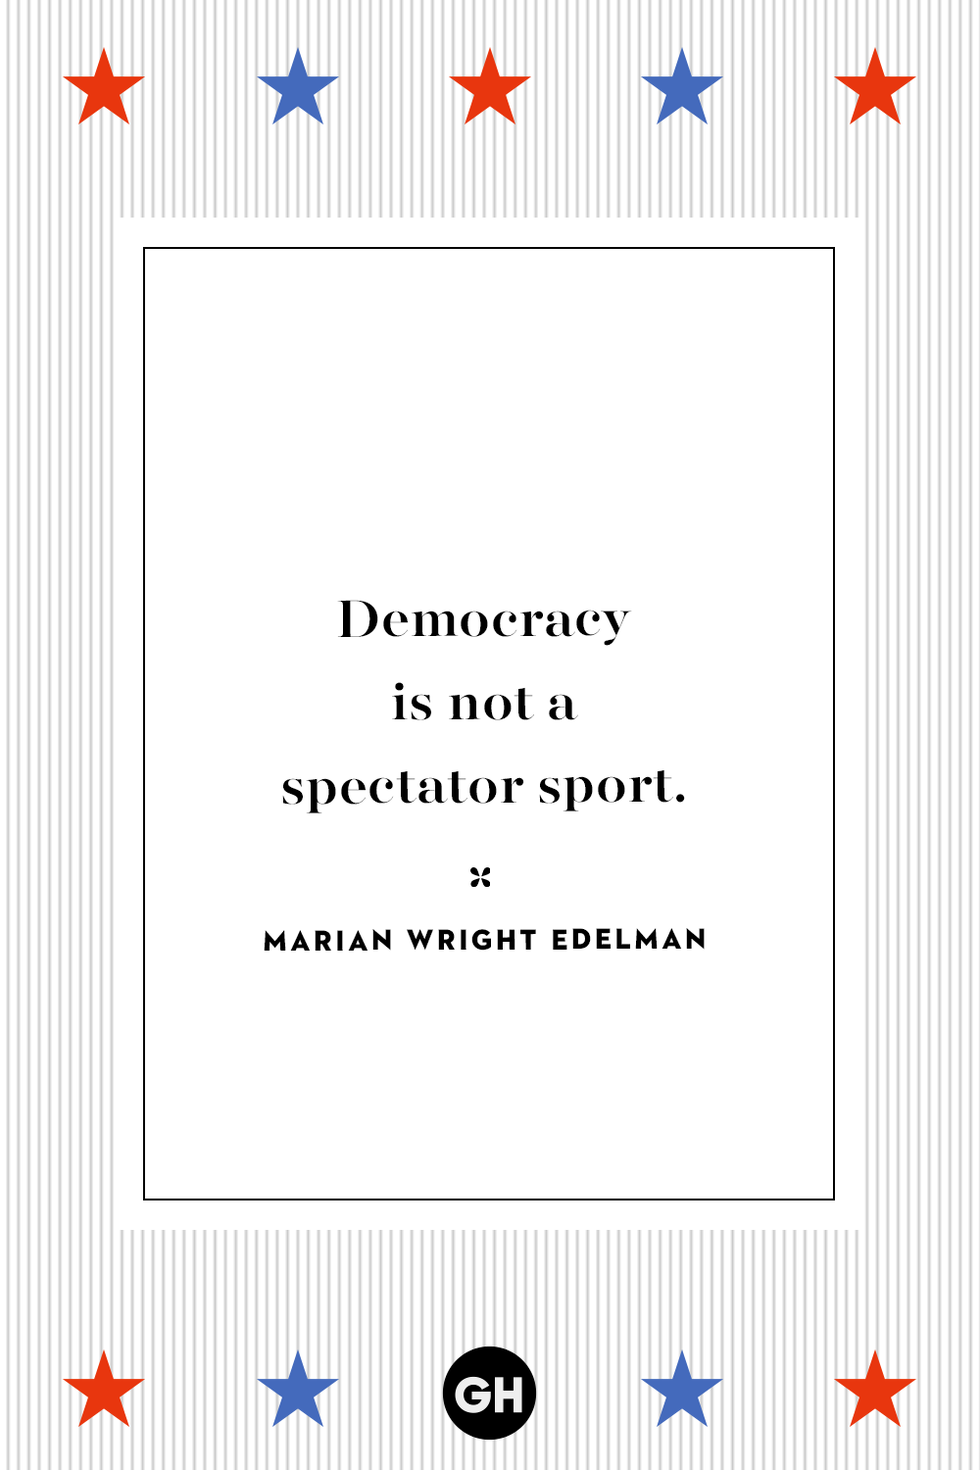 election-quotes-voting-quotes-17-marian-wright-edelman-1567019364